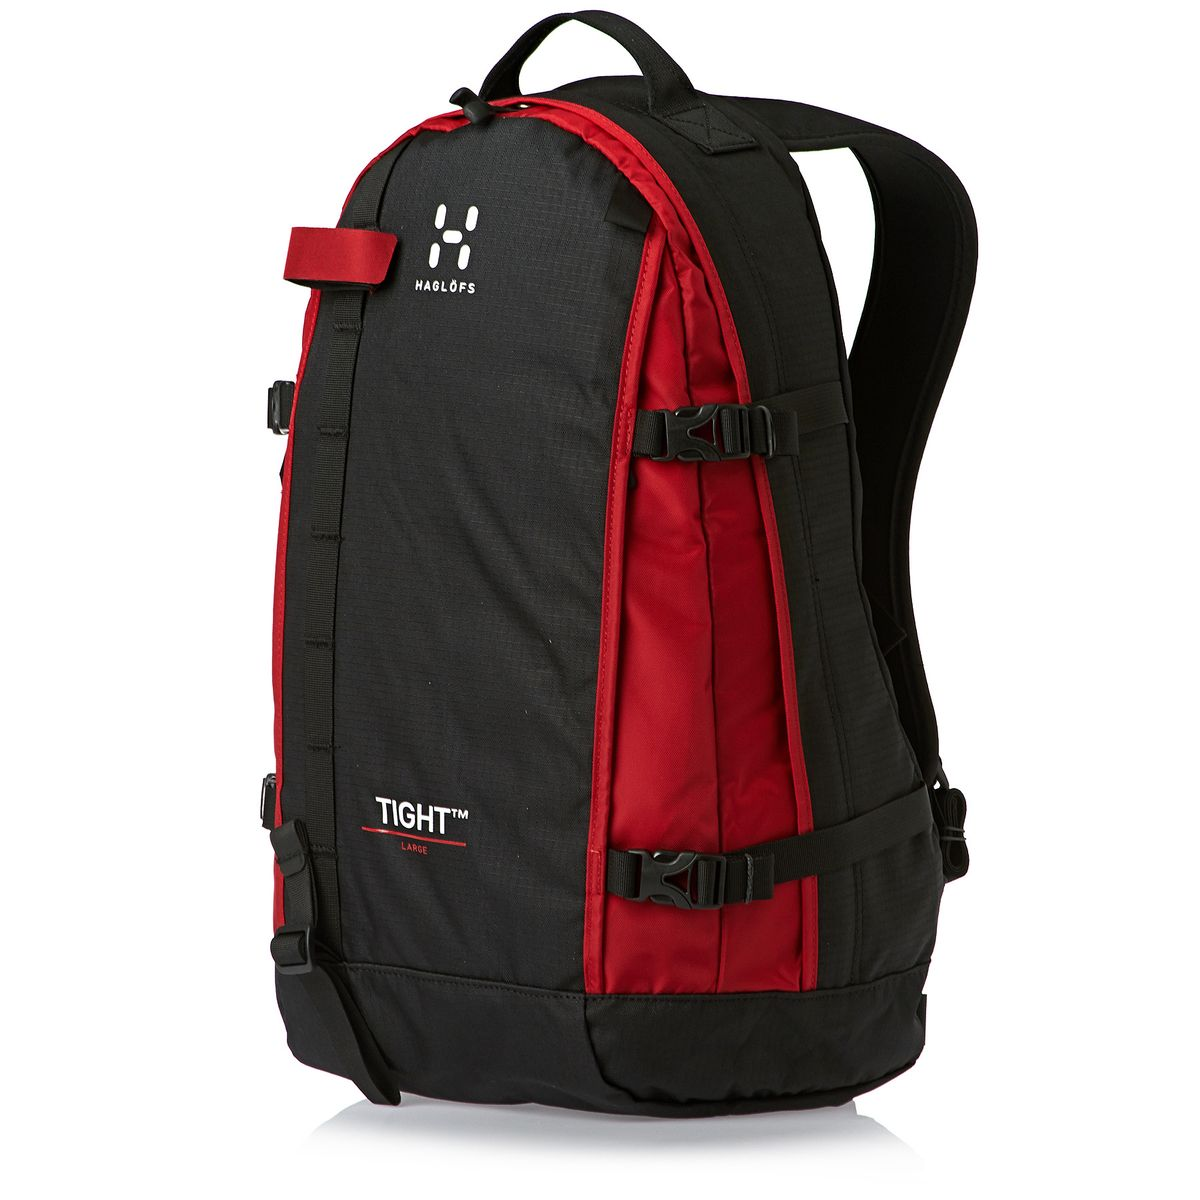 haglofs-backpacks-haglofs-tight-large-backpack-true-black-rich-red